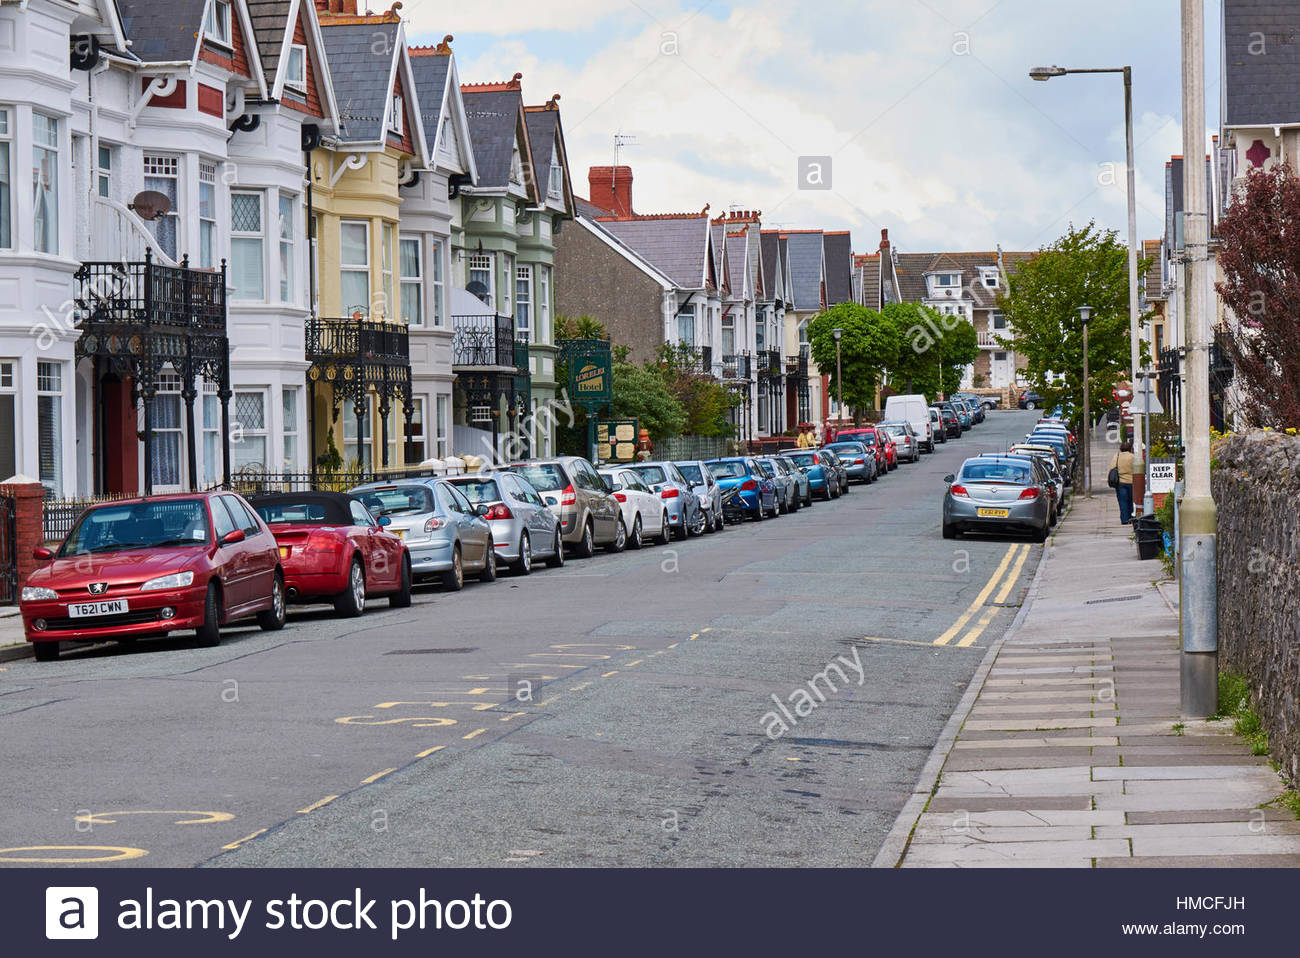 Cars parked both side od a street in Porthcawl South Wales UK - Stock Image